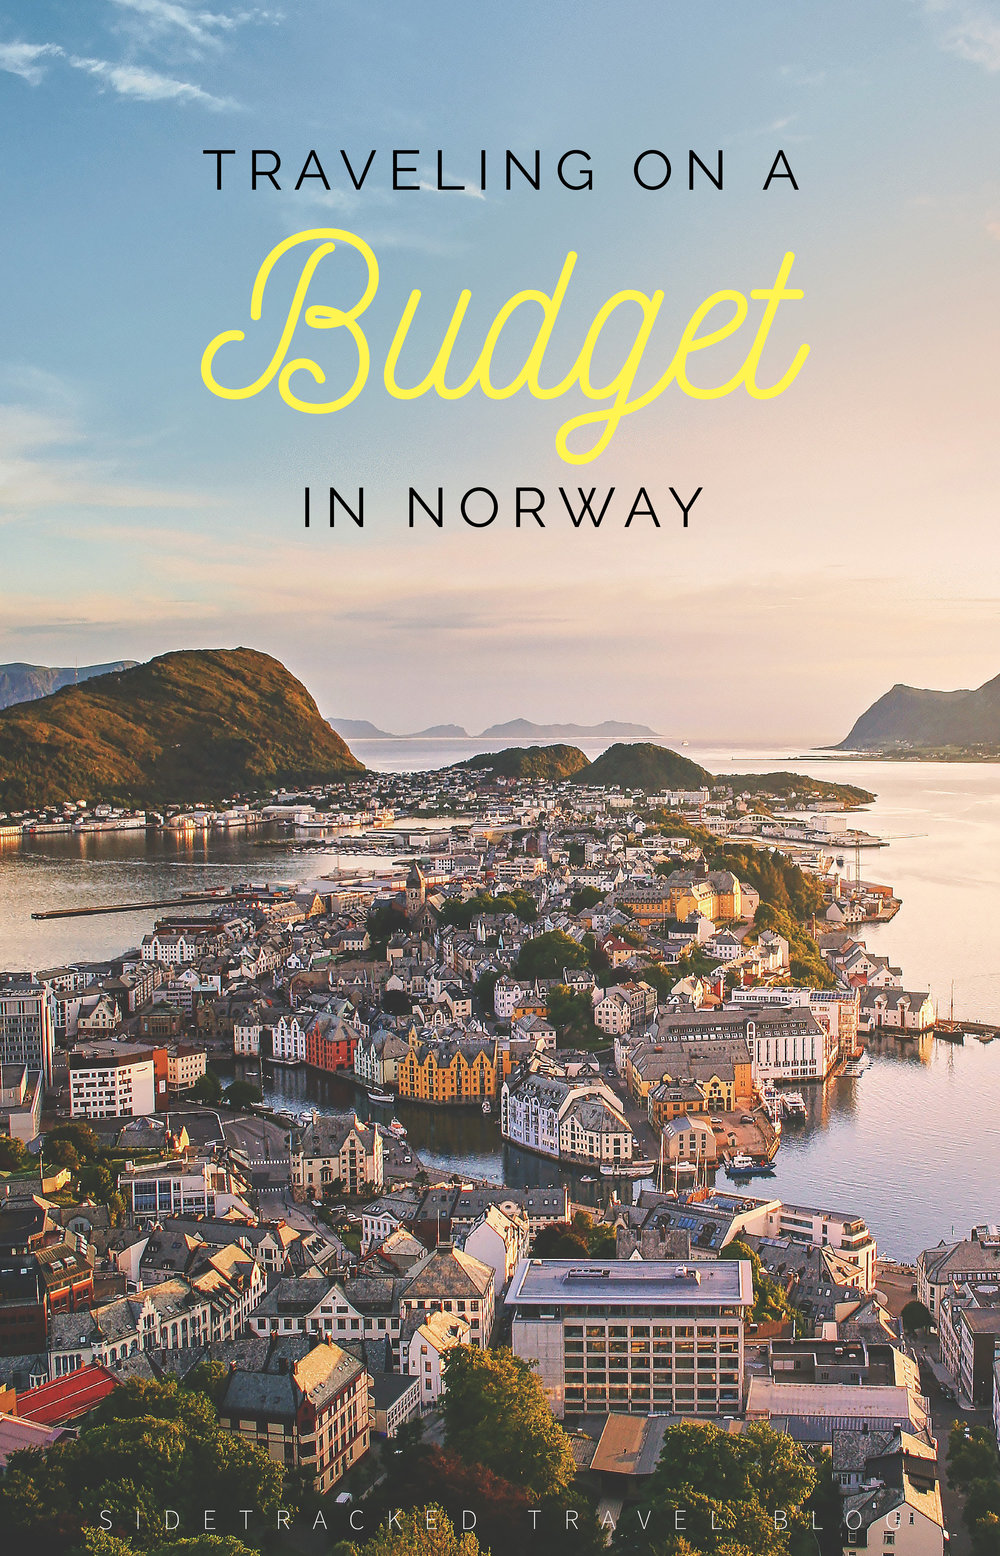 There's one thing that can often catch the unsuspecting traveler off guard: just  how  expensive Norway can be. However, with a few handy tips it's entirely possible to fully experience Norway without breaking the bank.